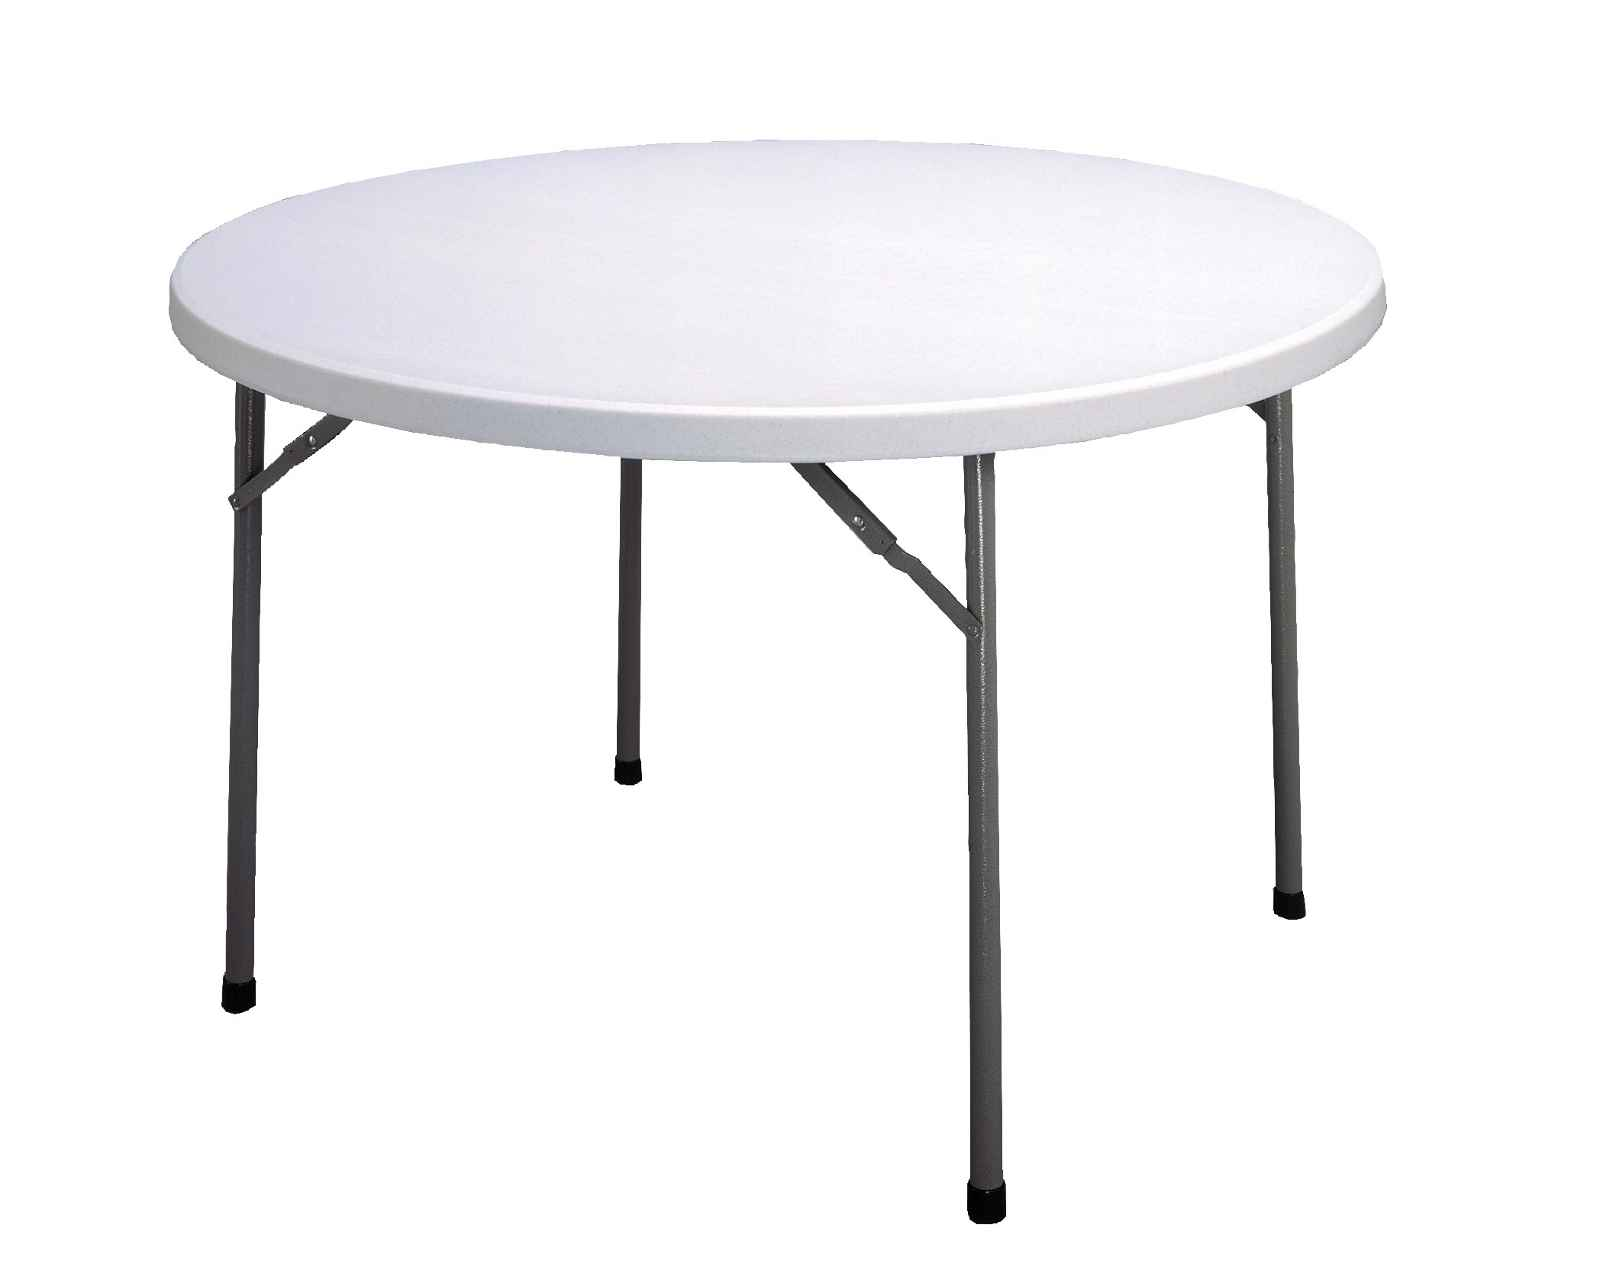 White round folding tables for commercial use